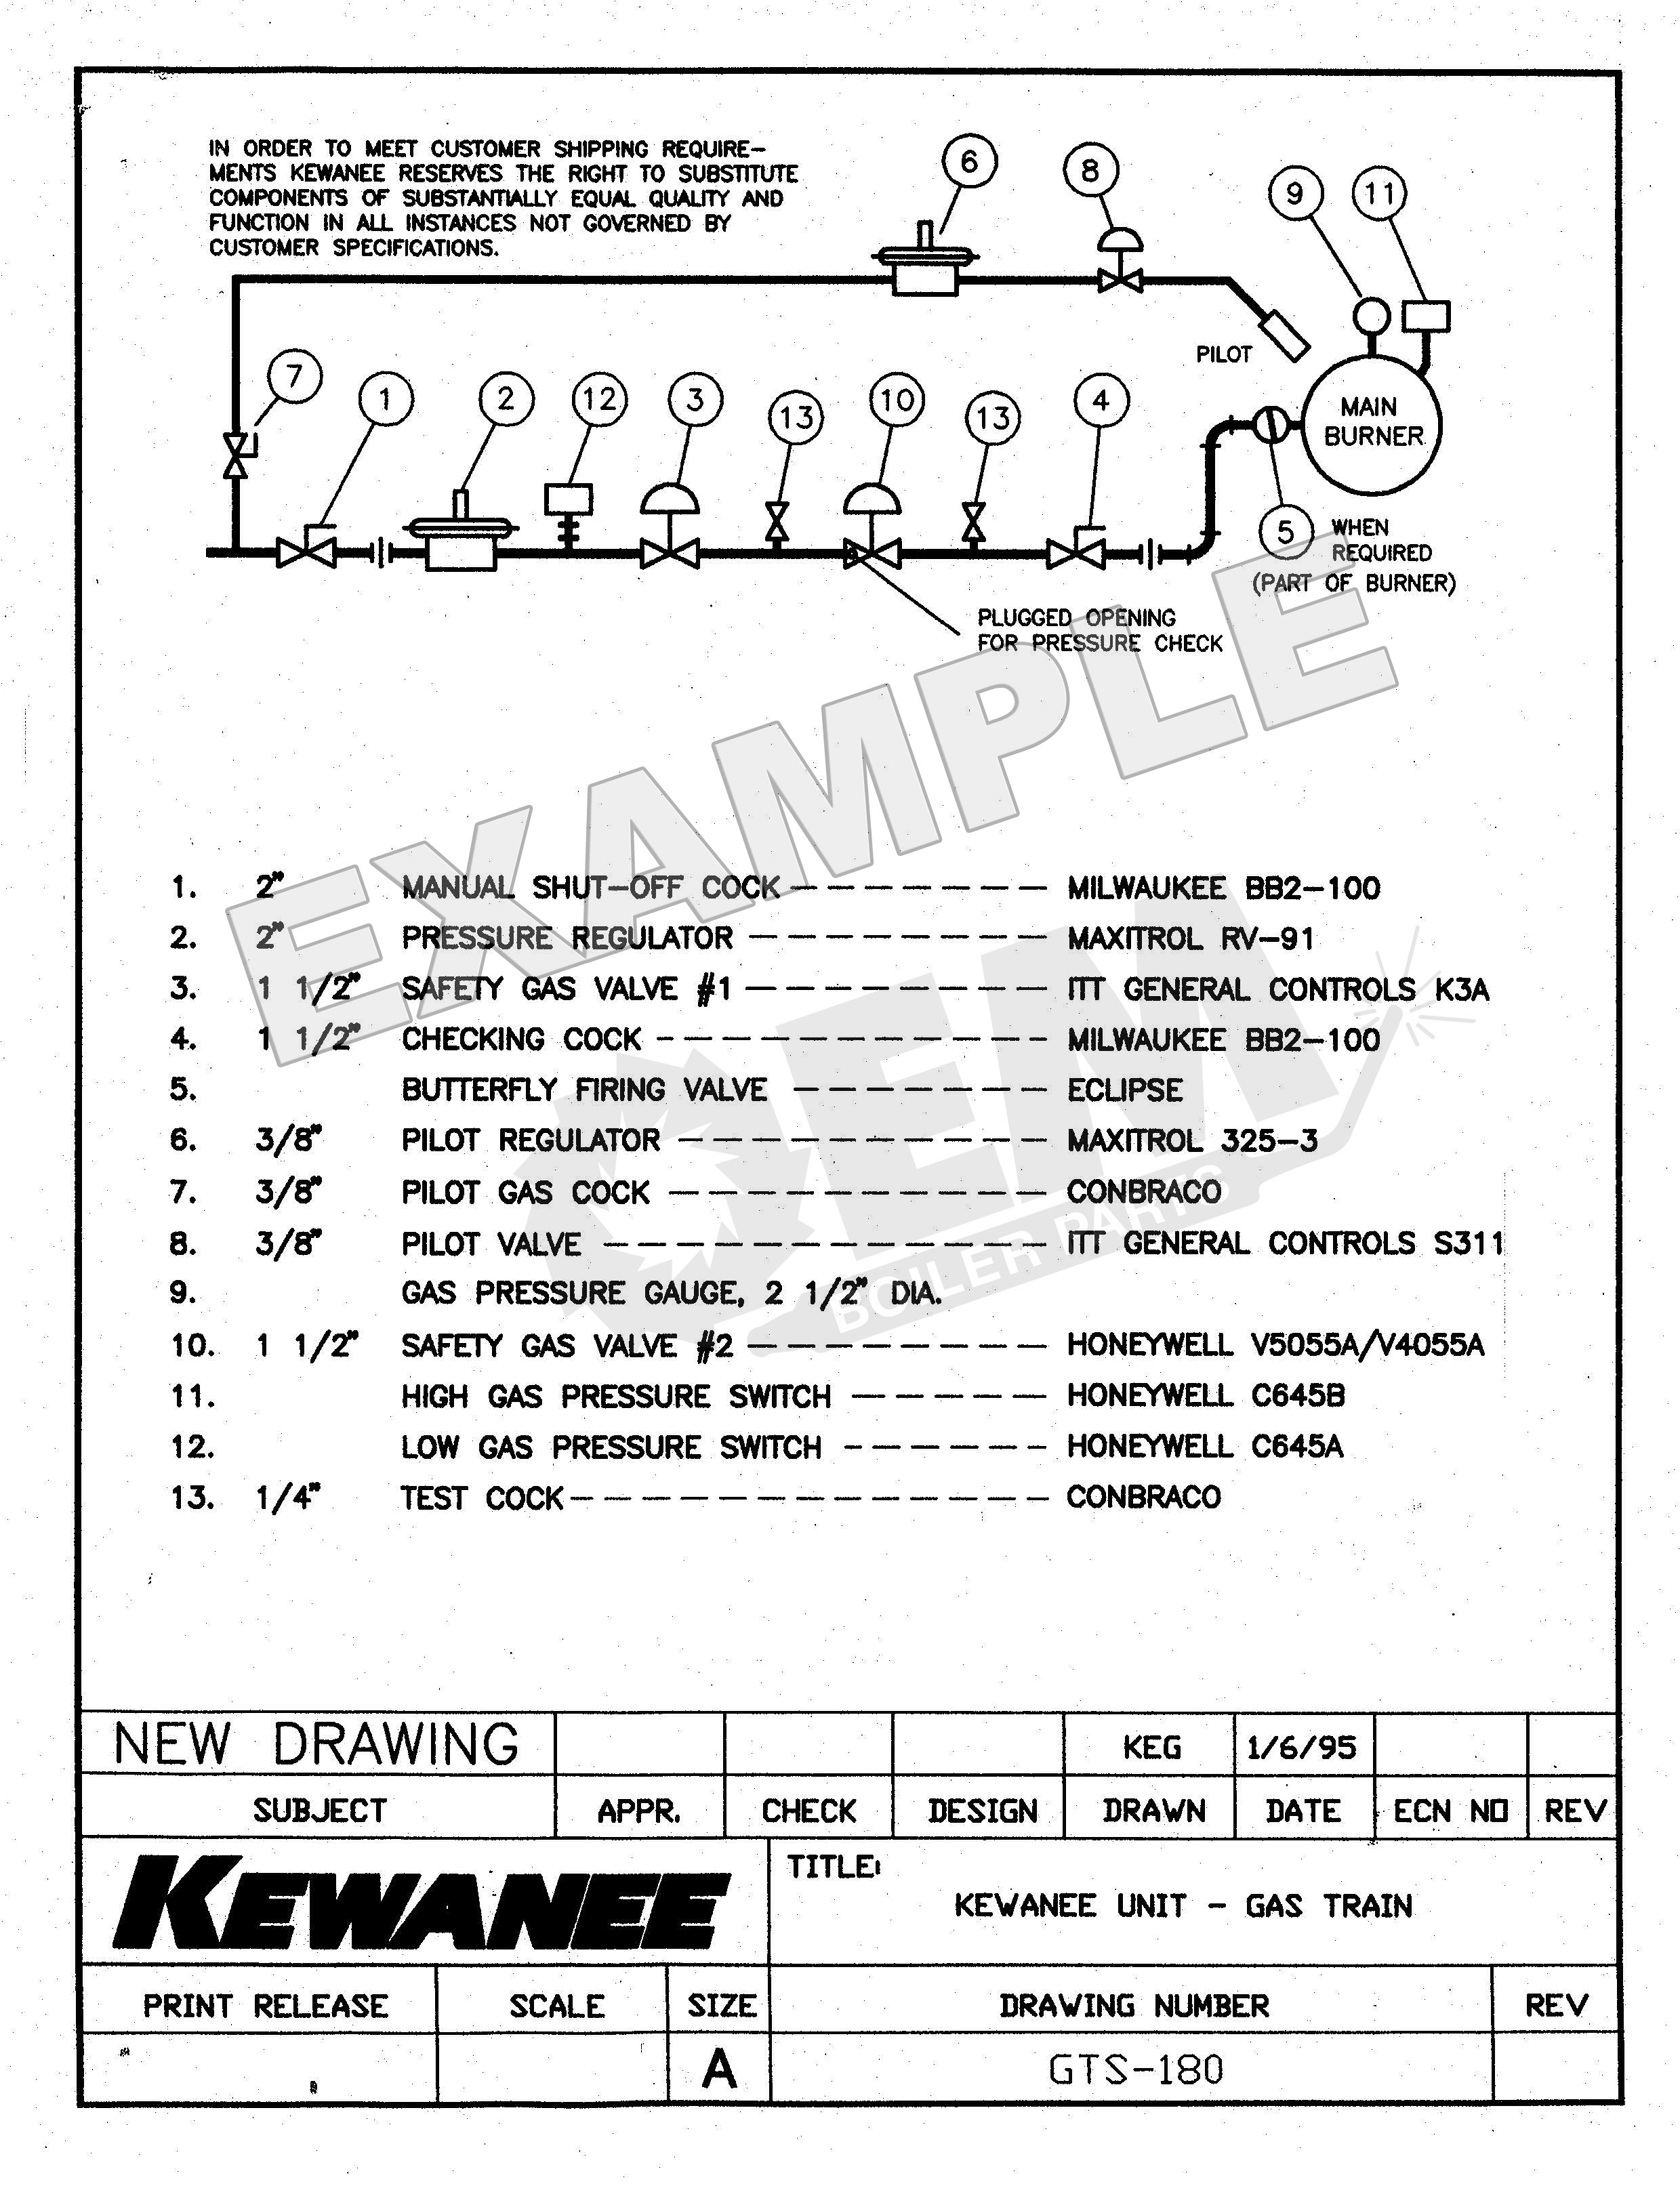 Kewanee Job-Specific Technical Data